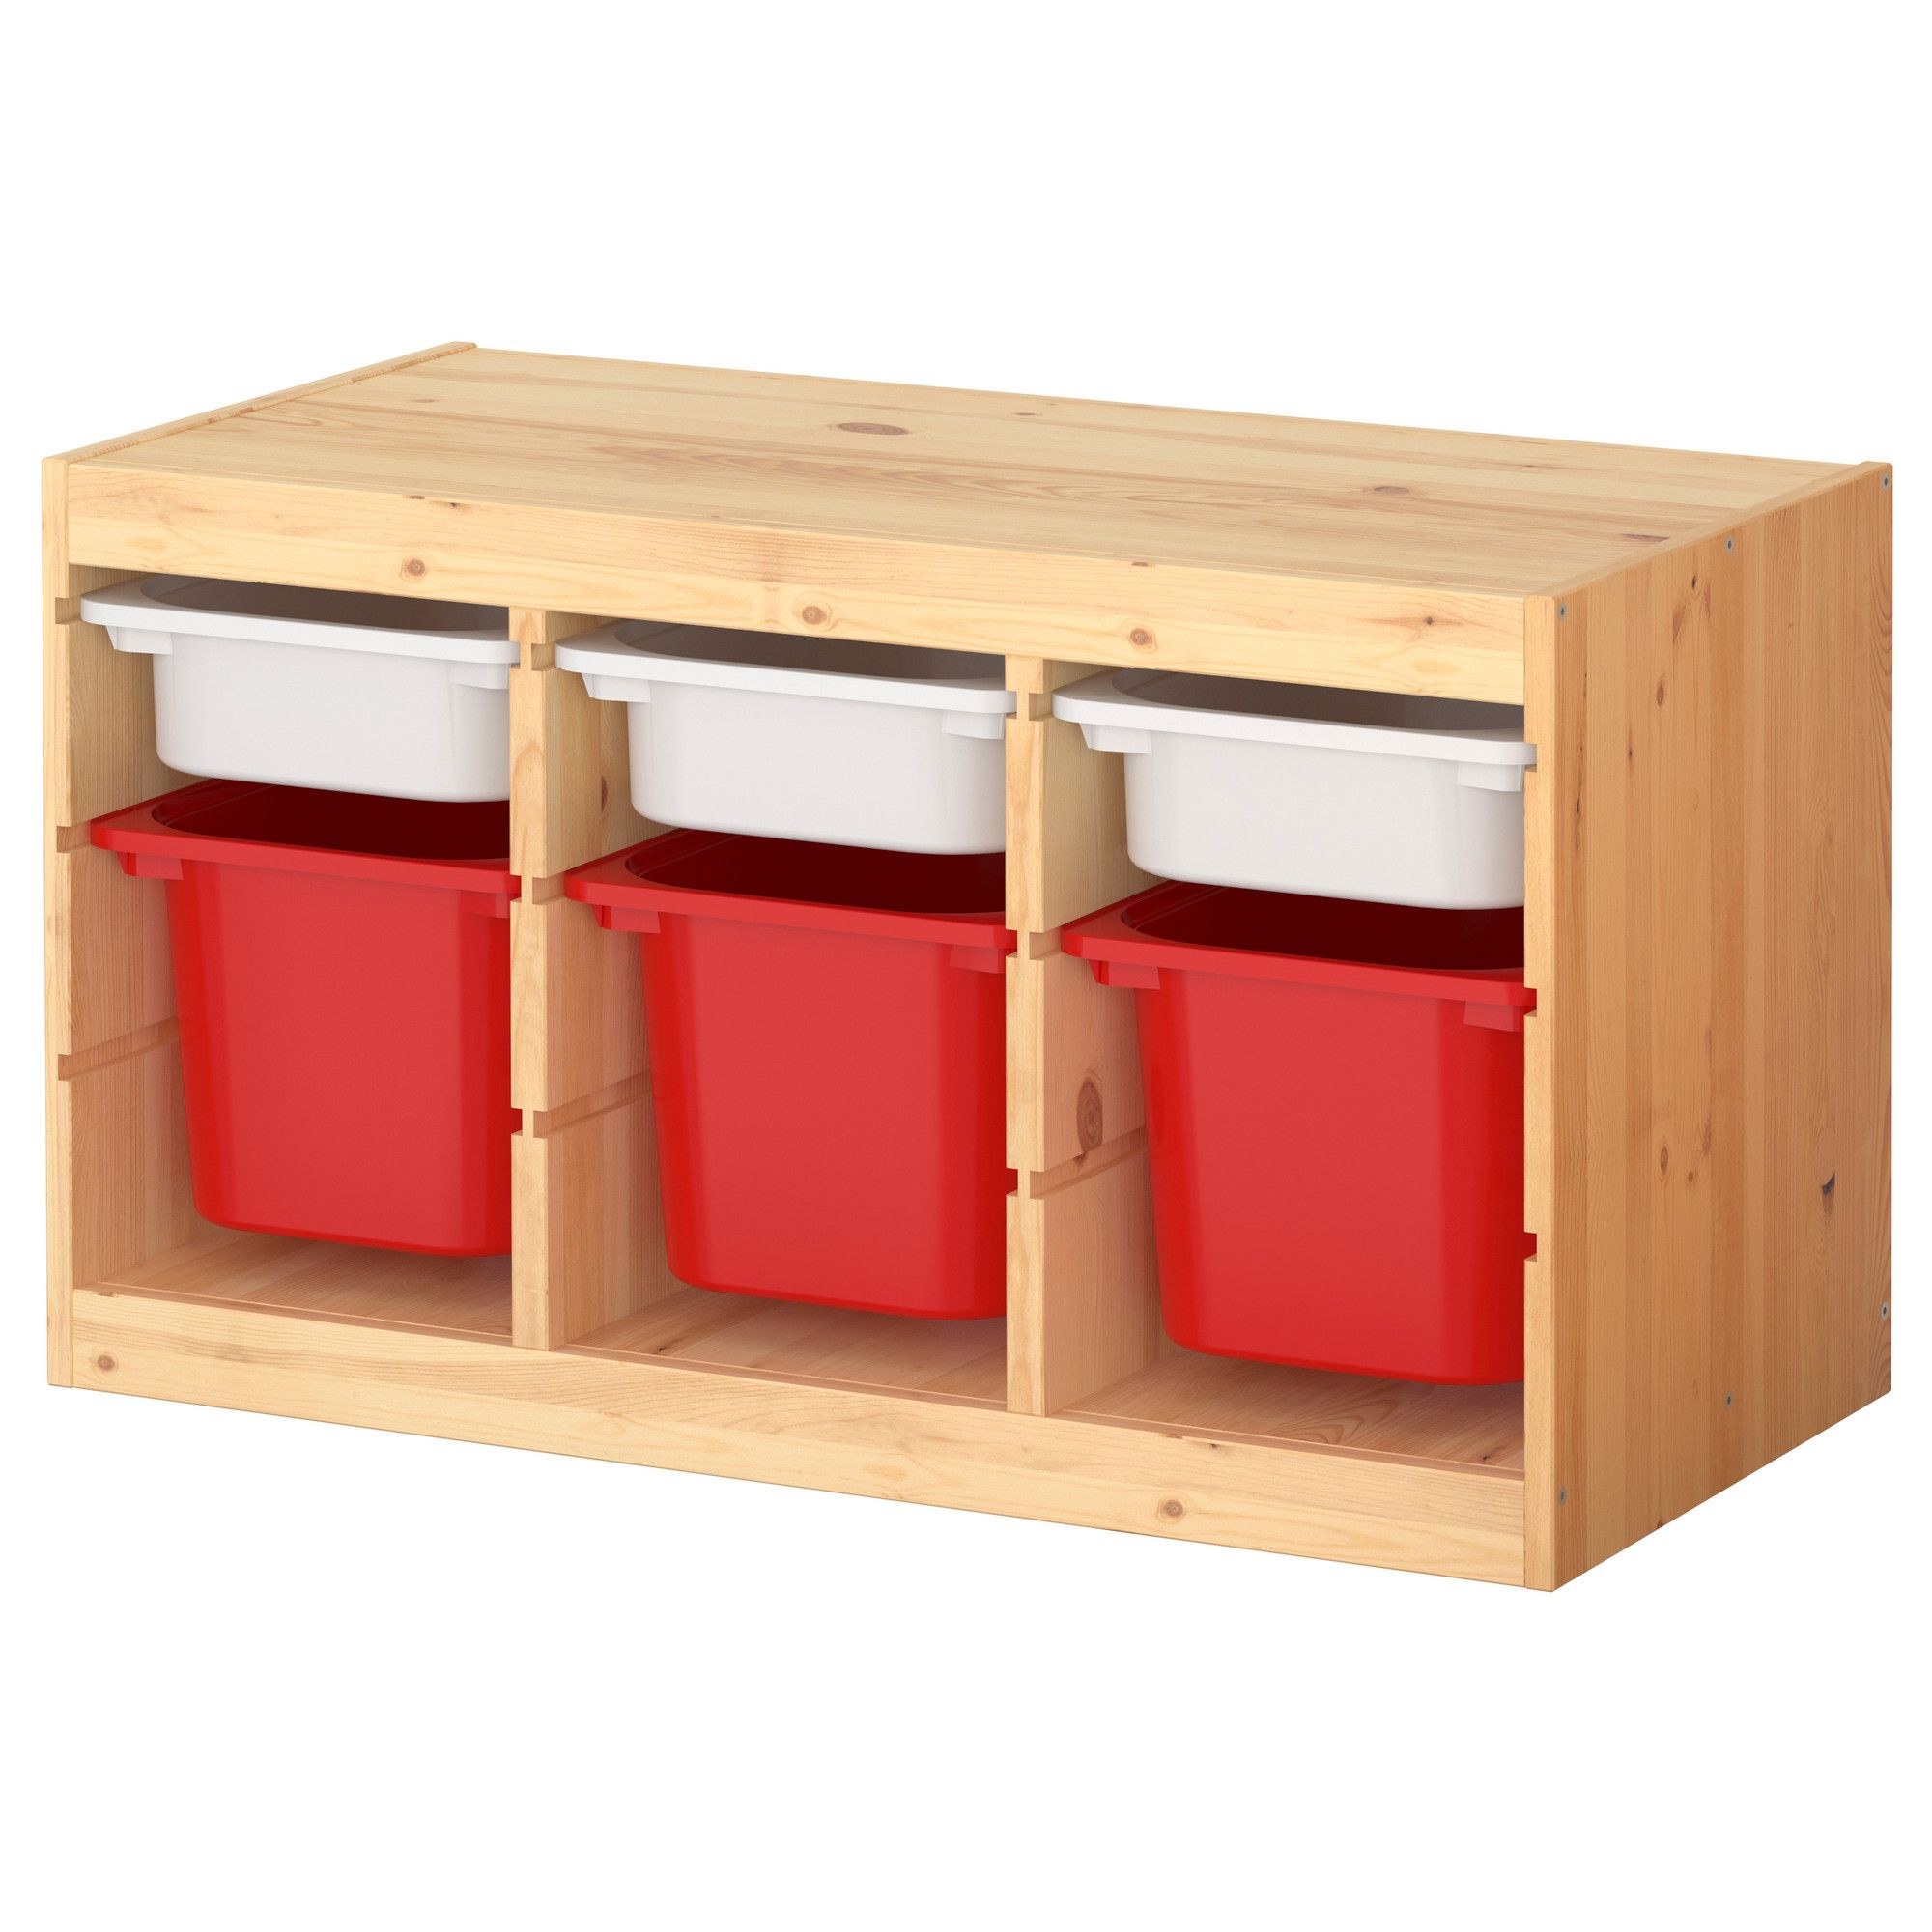 TROFAST Storage Combination With Boxes IKEA Several Grooves So You Can  Place Boxes Or Shelves Where You Want Them.